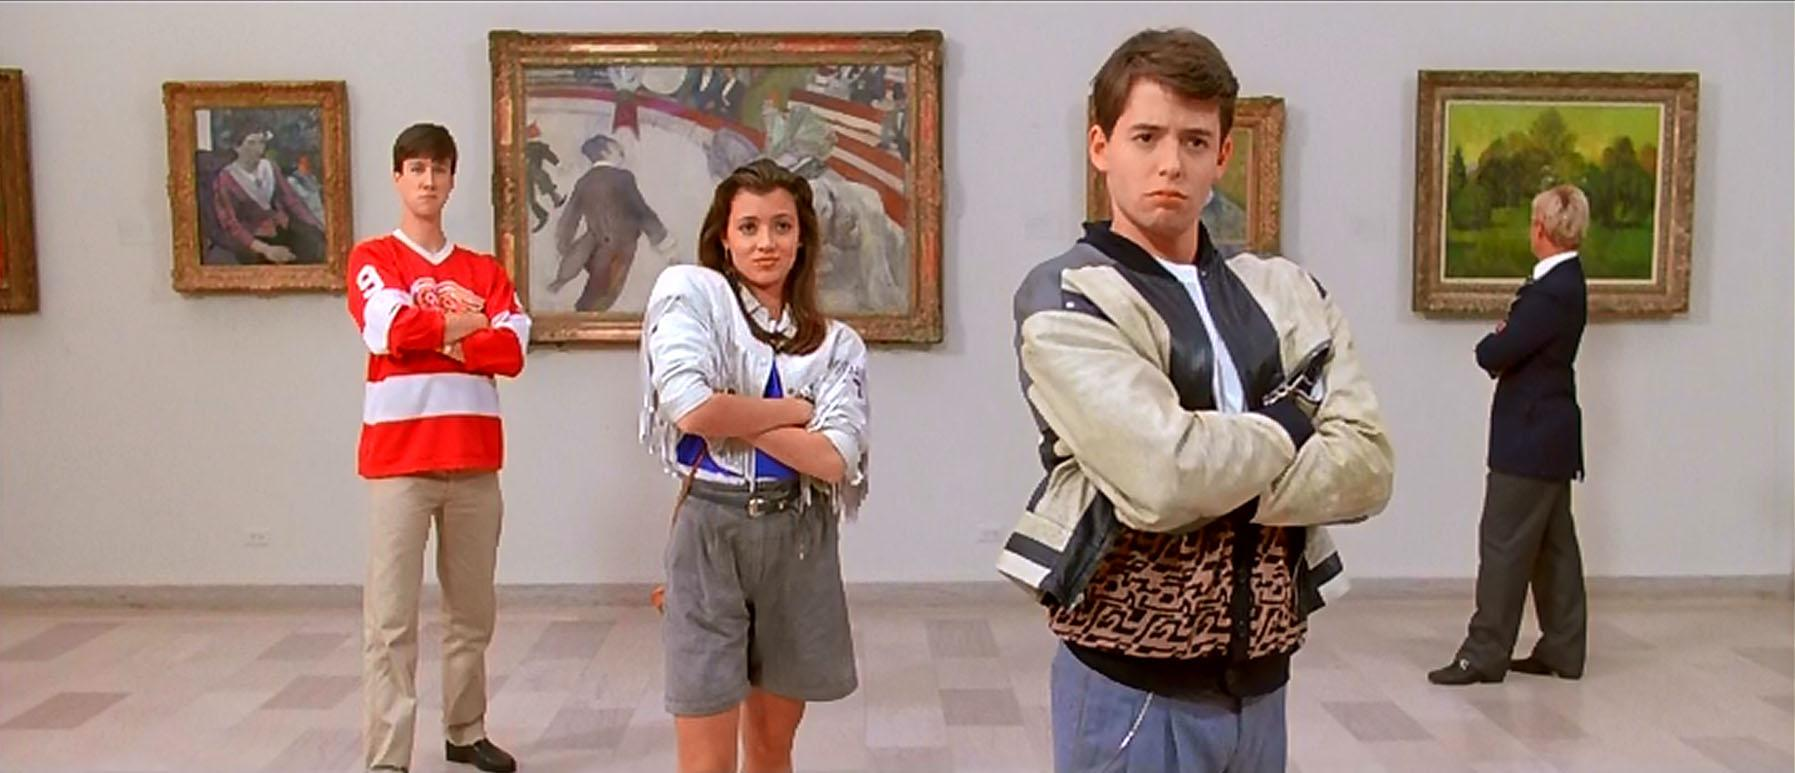 La Folle journée de Ferris Bueller : « Life moves pretty fast… »